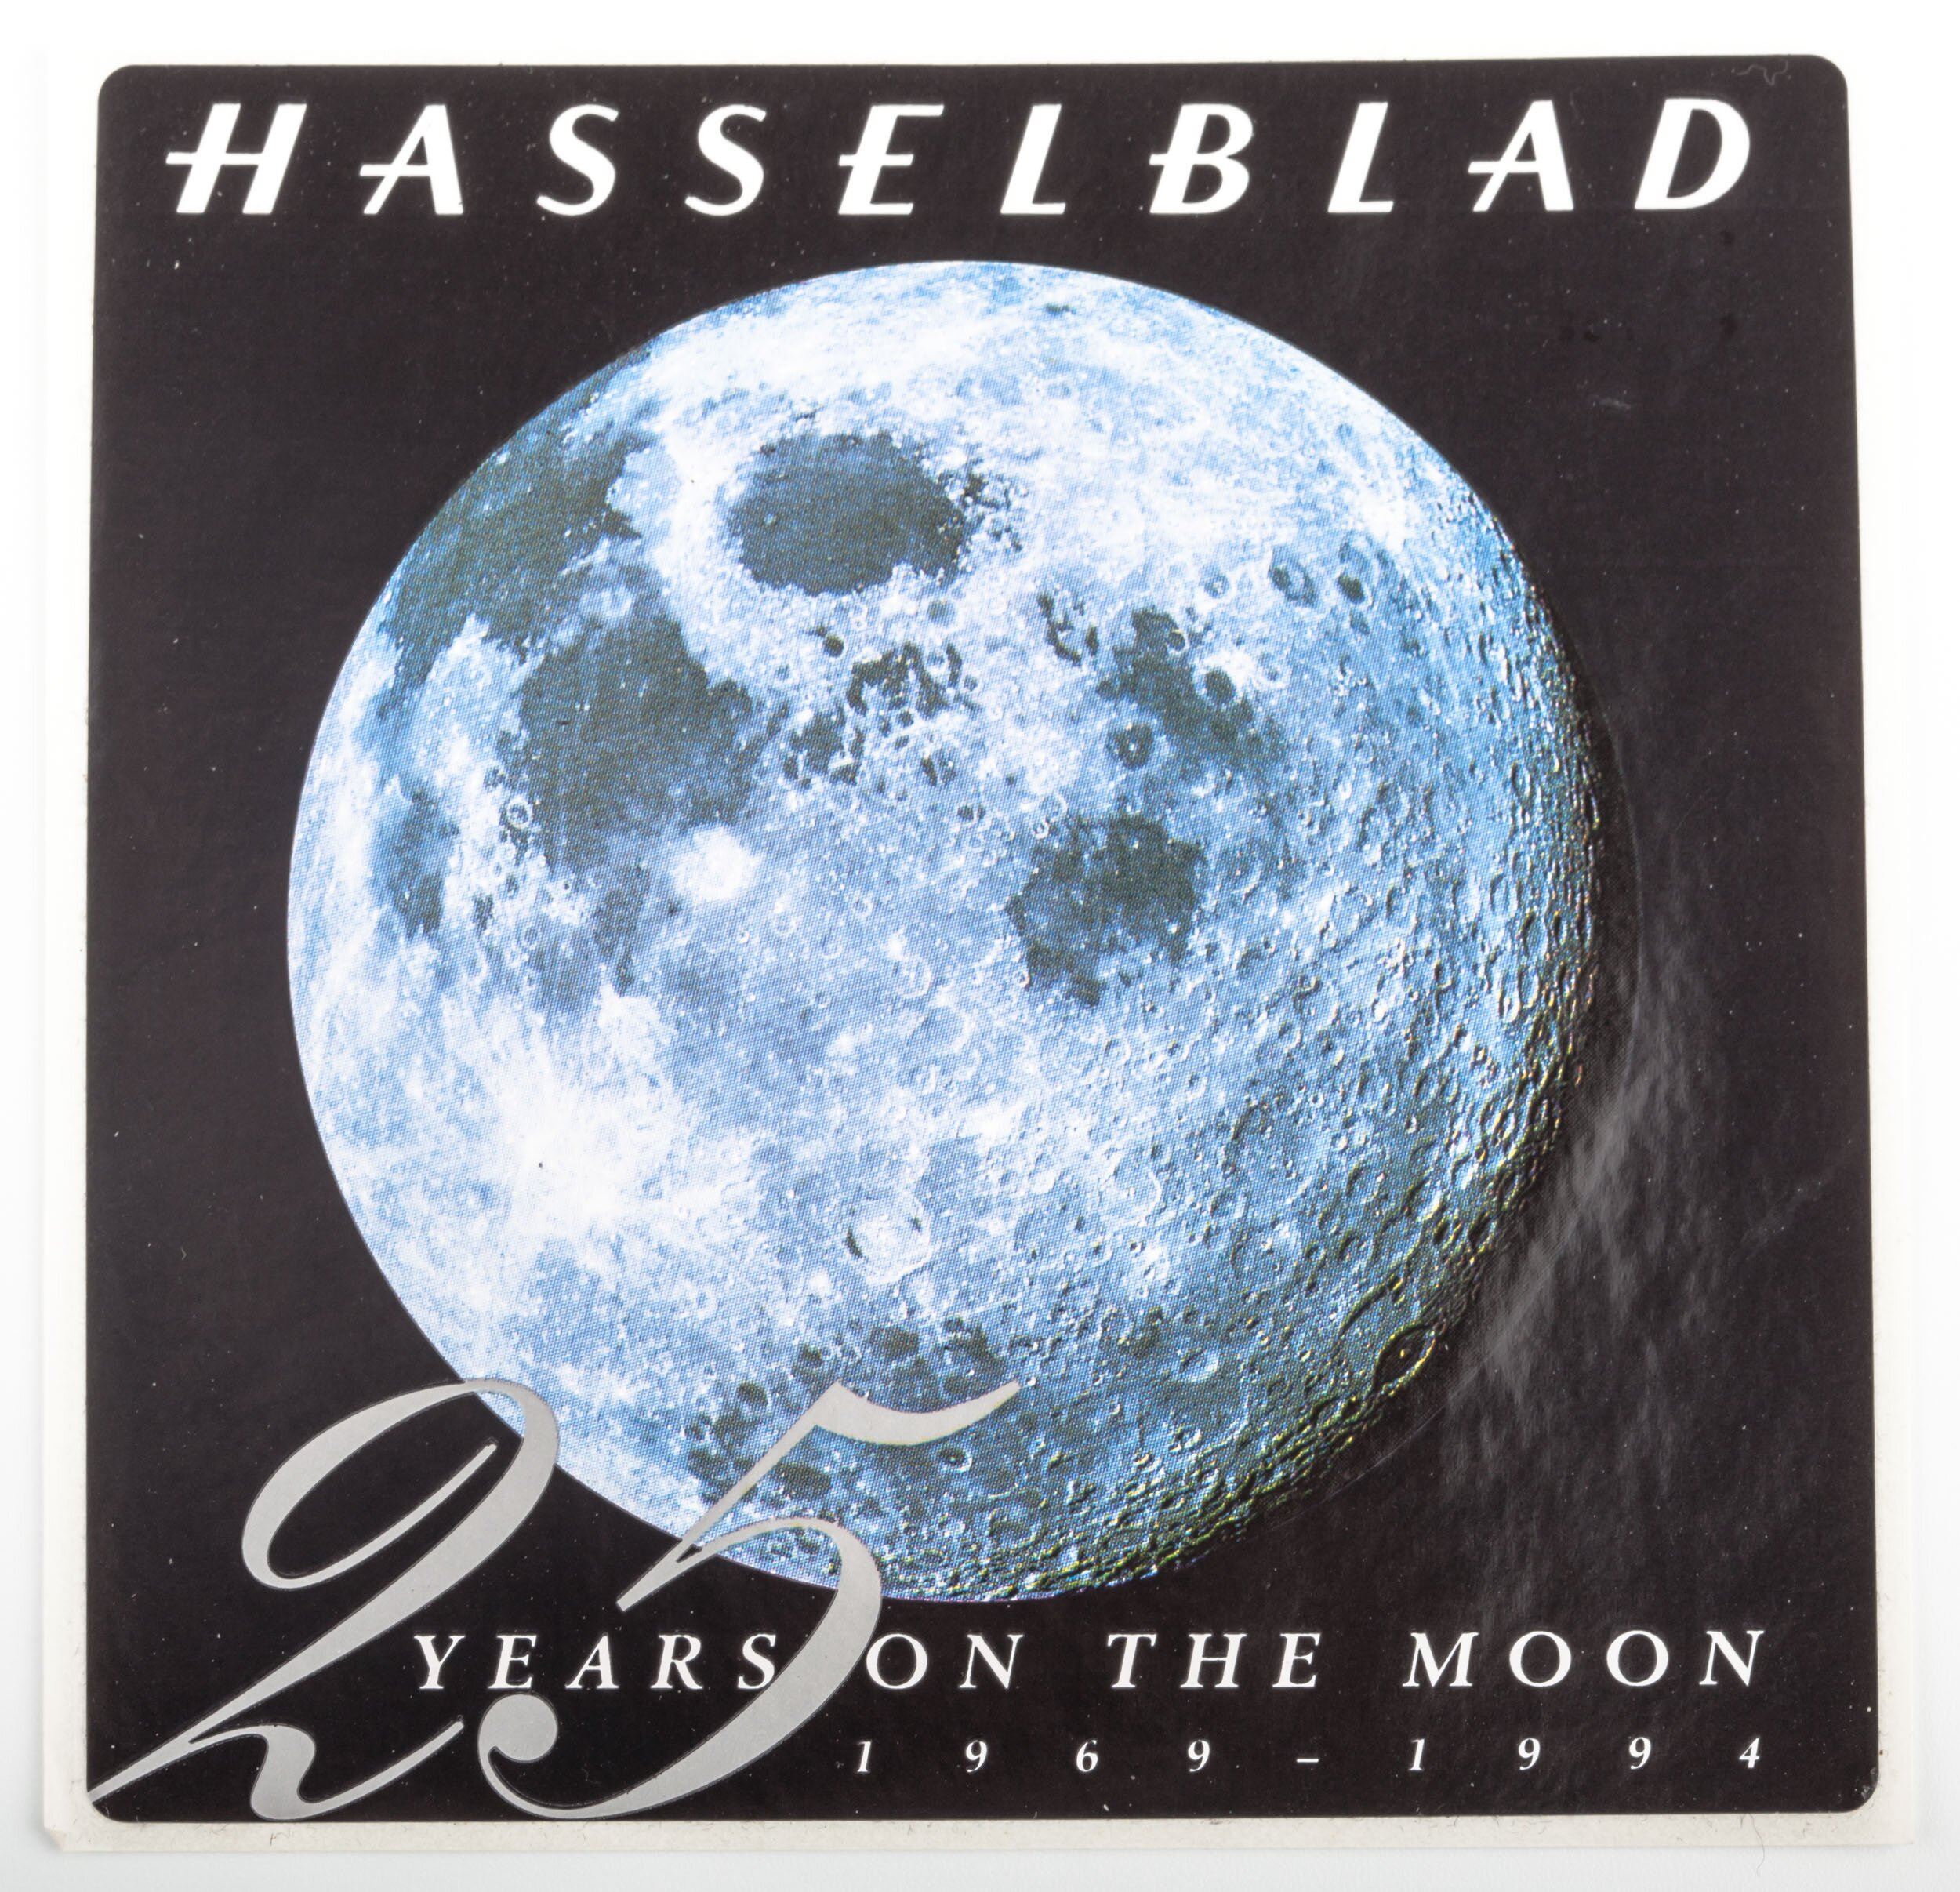 """Hasselblad Sticker """"25 Years on the moon 1969-1994"""""""